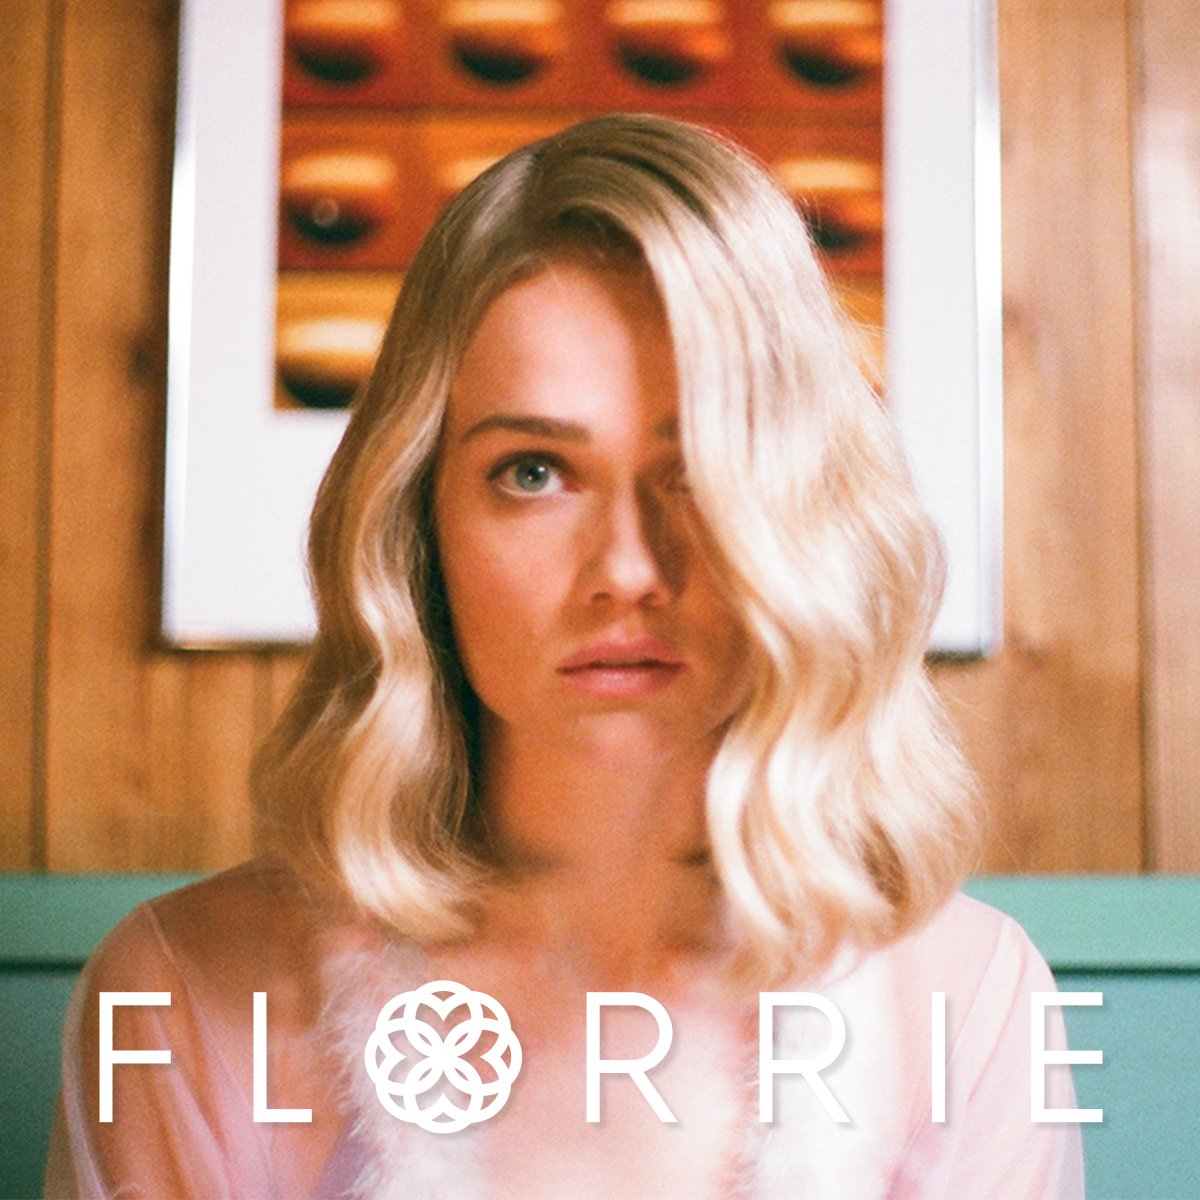 .@Florrie is releasing her fantastic new single 'Real Love' 5th Feb. It's sooo catchy! You're all going to love it! https://t.co/rAWM4xcSbS